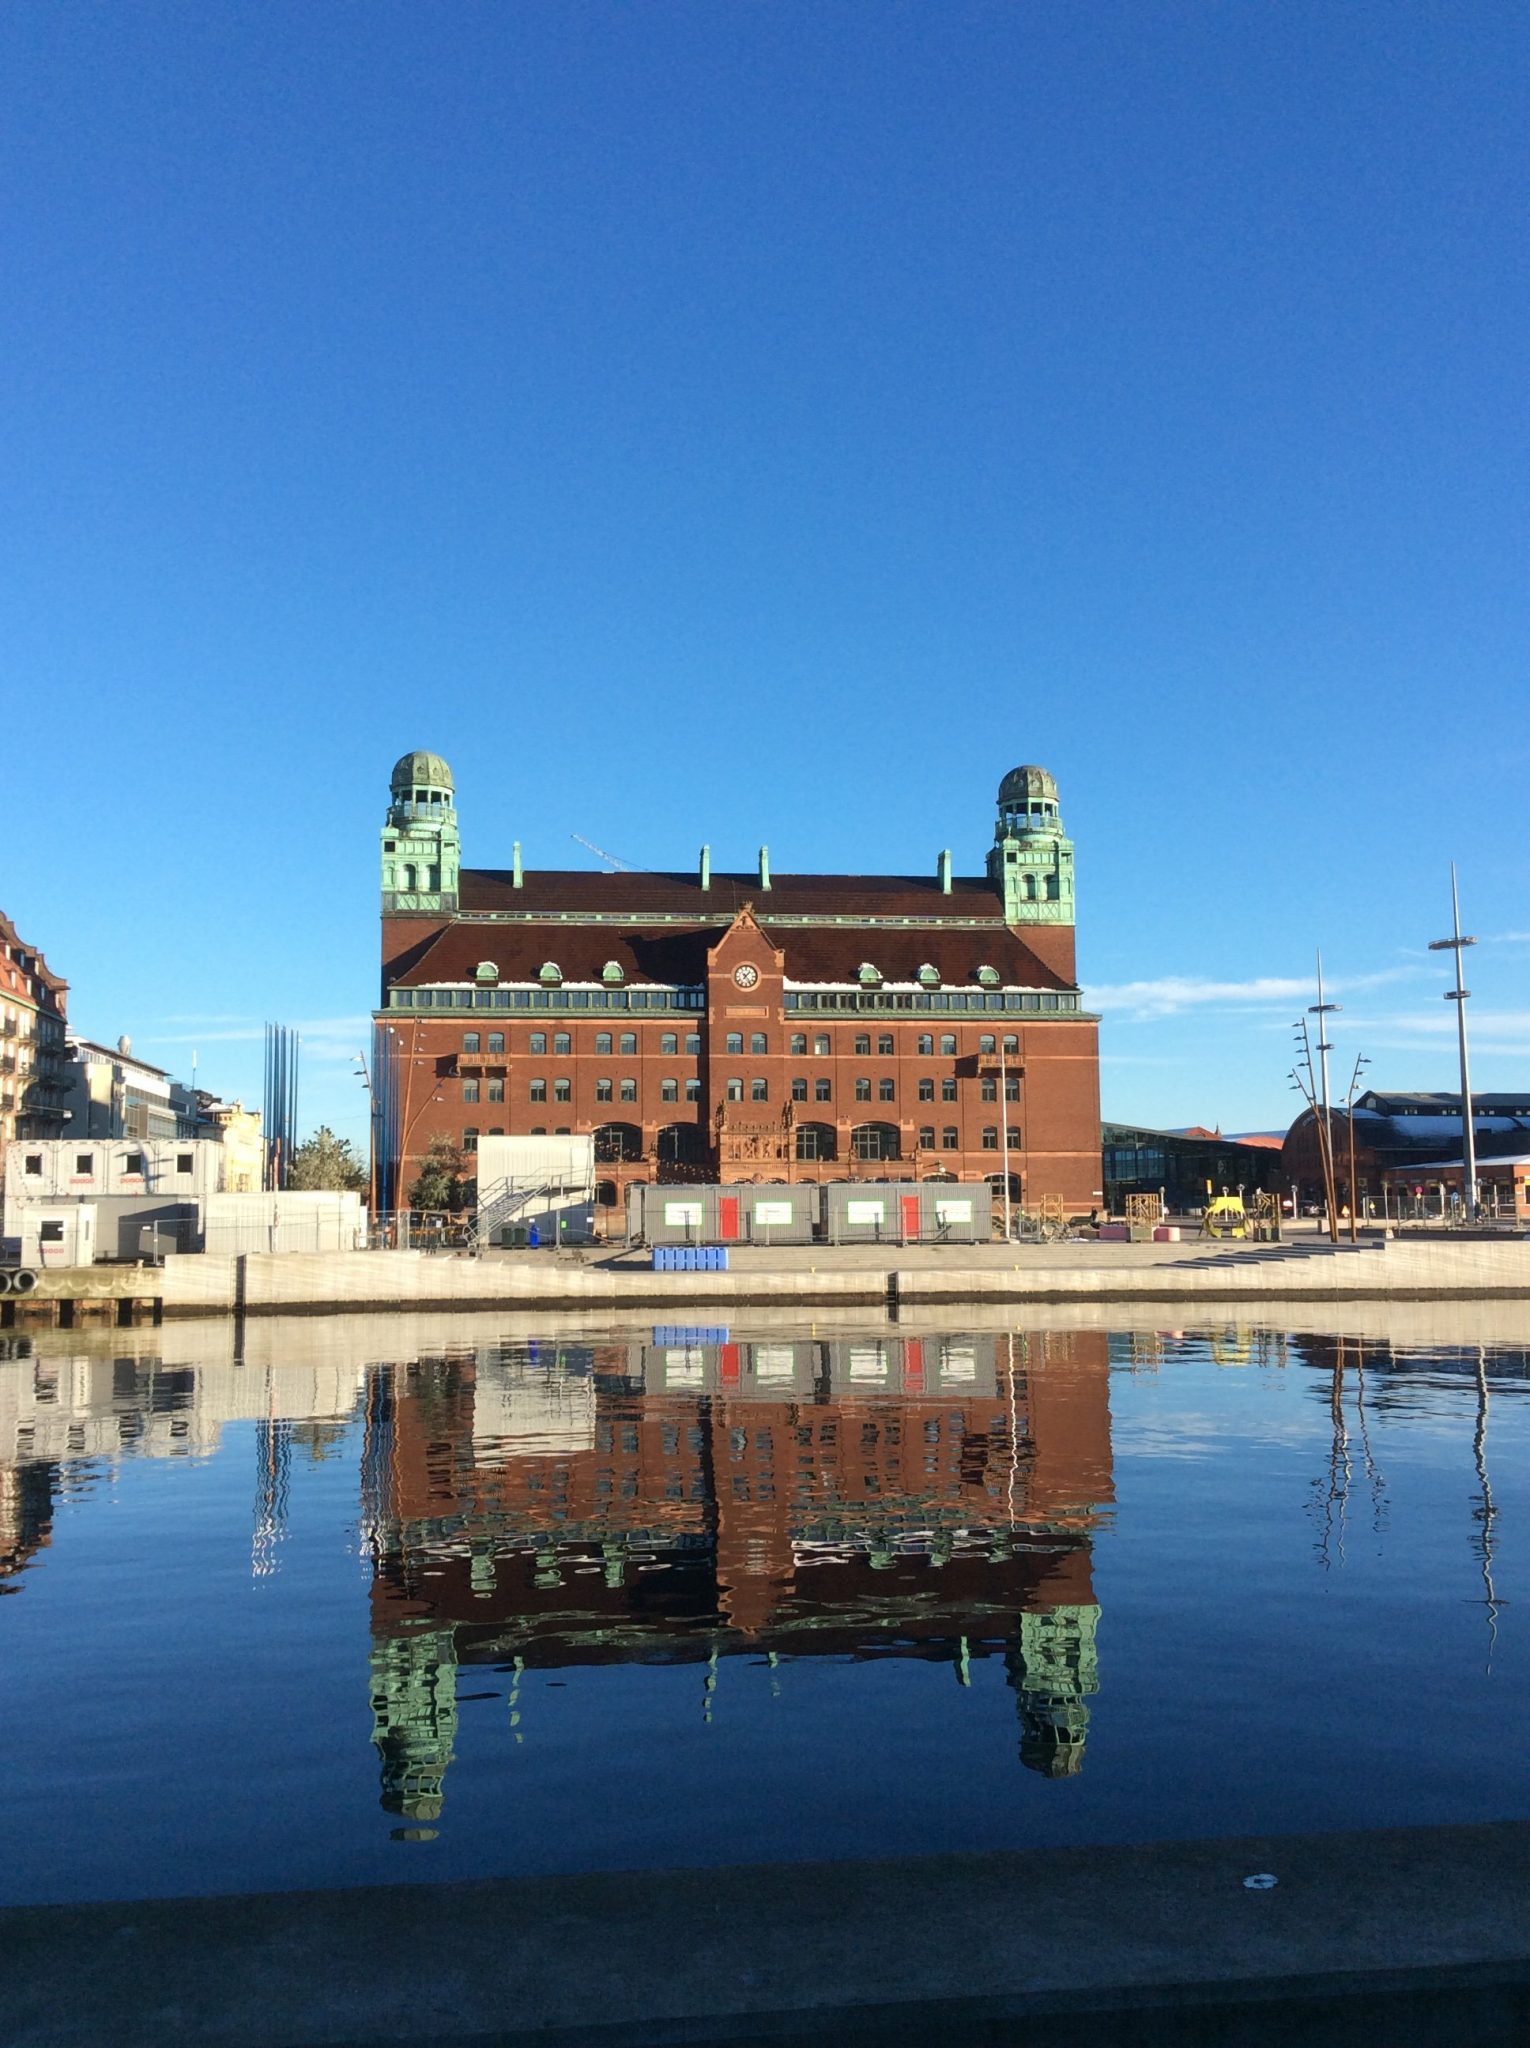 IMG 0211 - Malmö: the reflected city